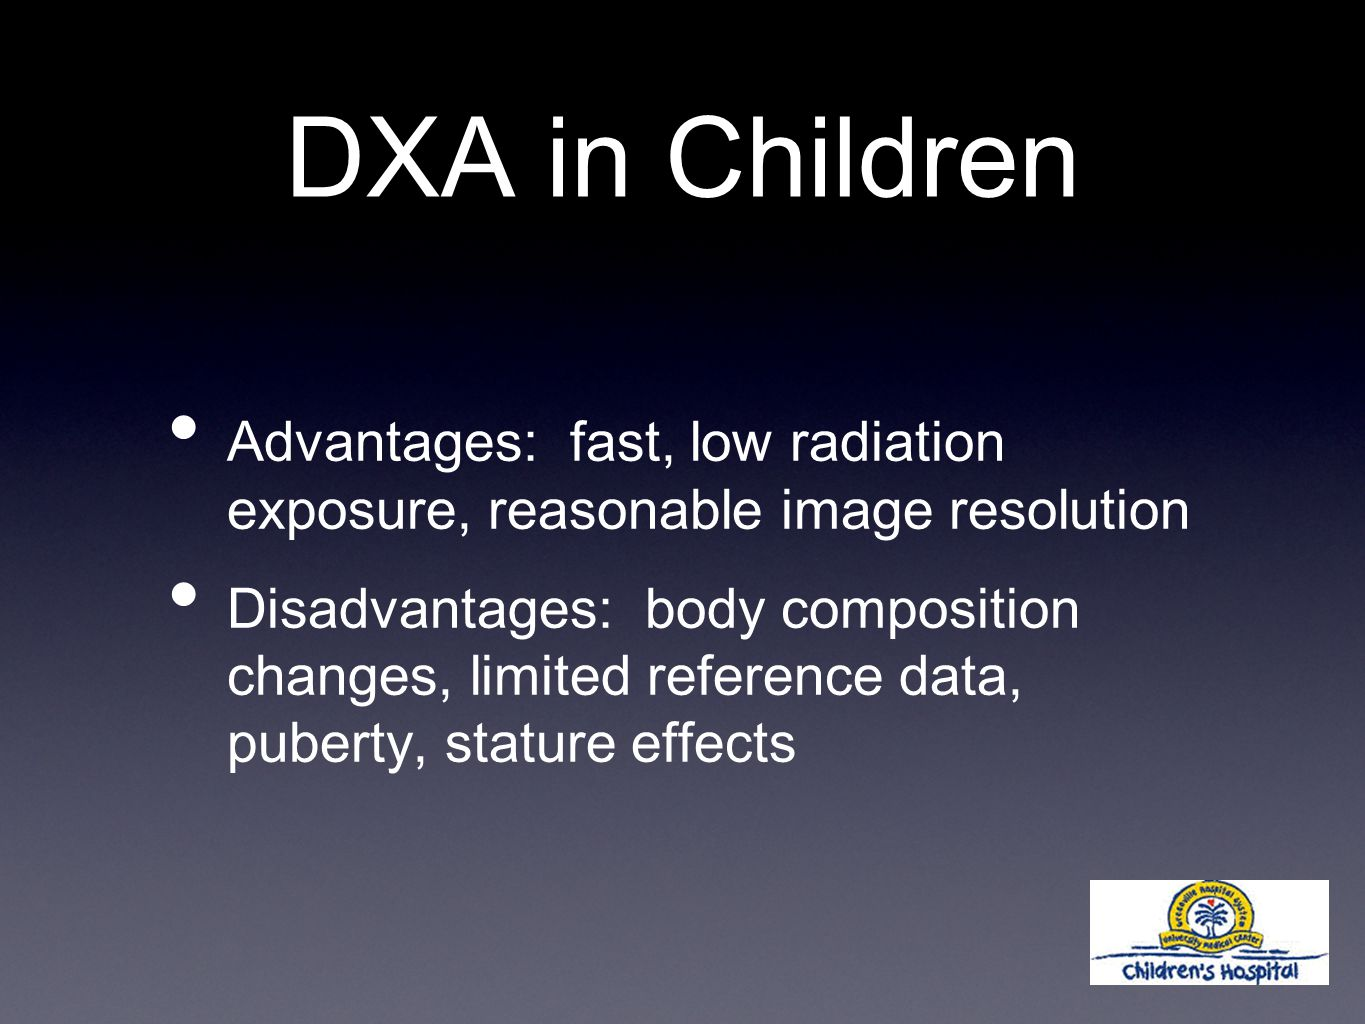 DXA in Children Advantages: fast, low radiation exposure, reasonable image resolution Disadvantages: body composition changes, limited reference data, puberty, stature effects